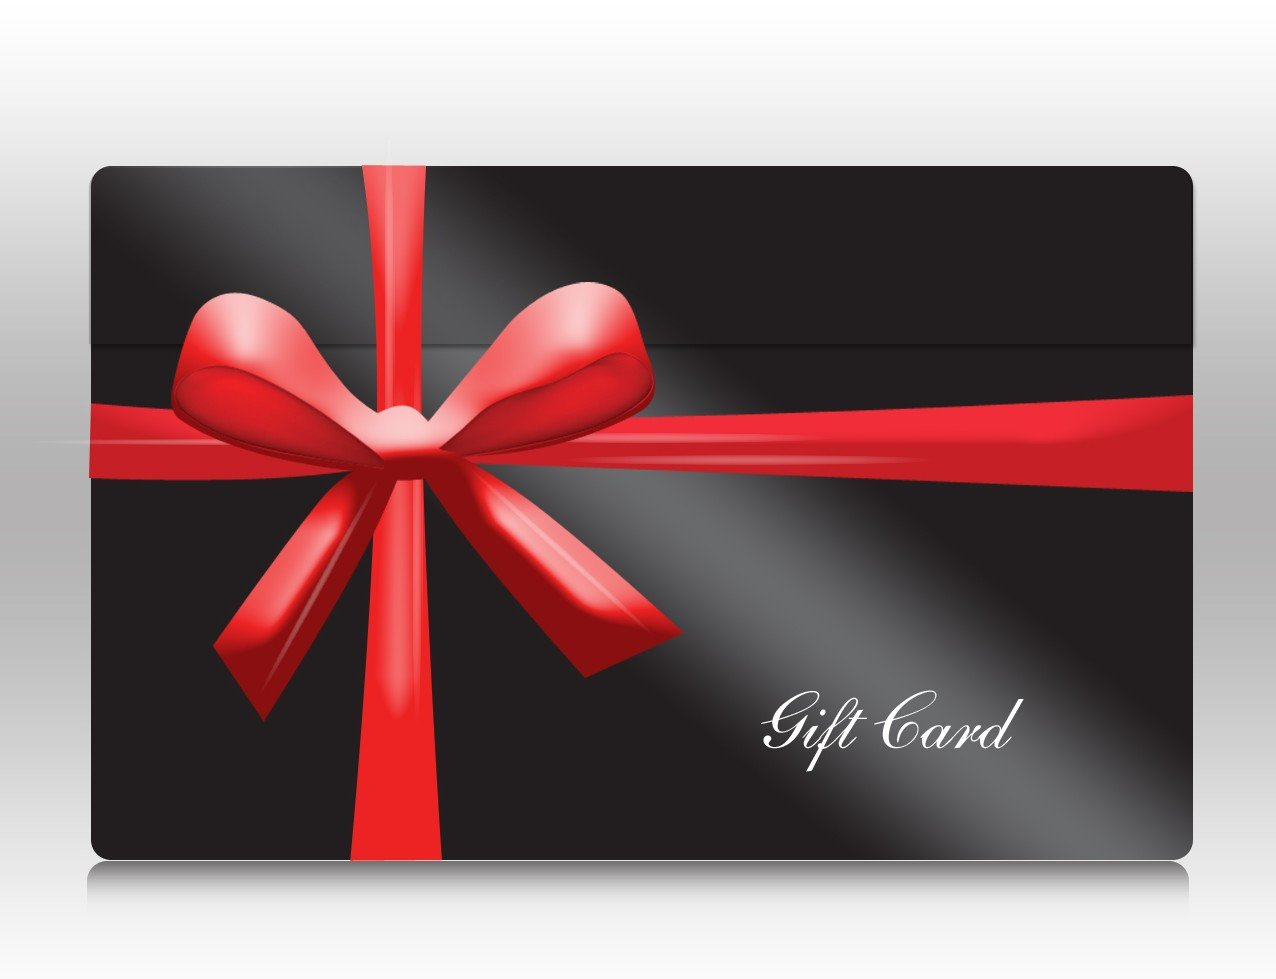 visiting-cards-backgrounds-gift-card-premium-psd